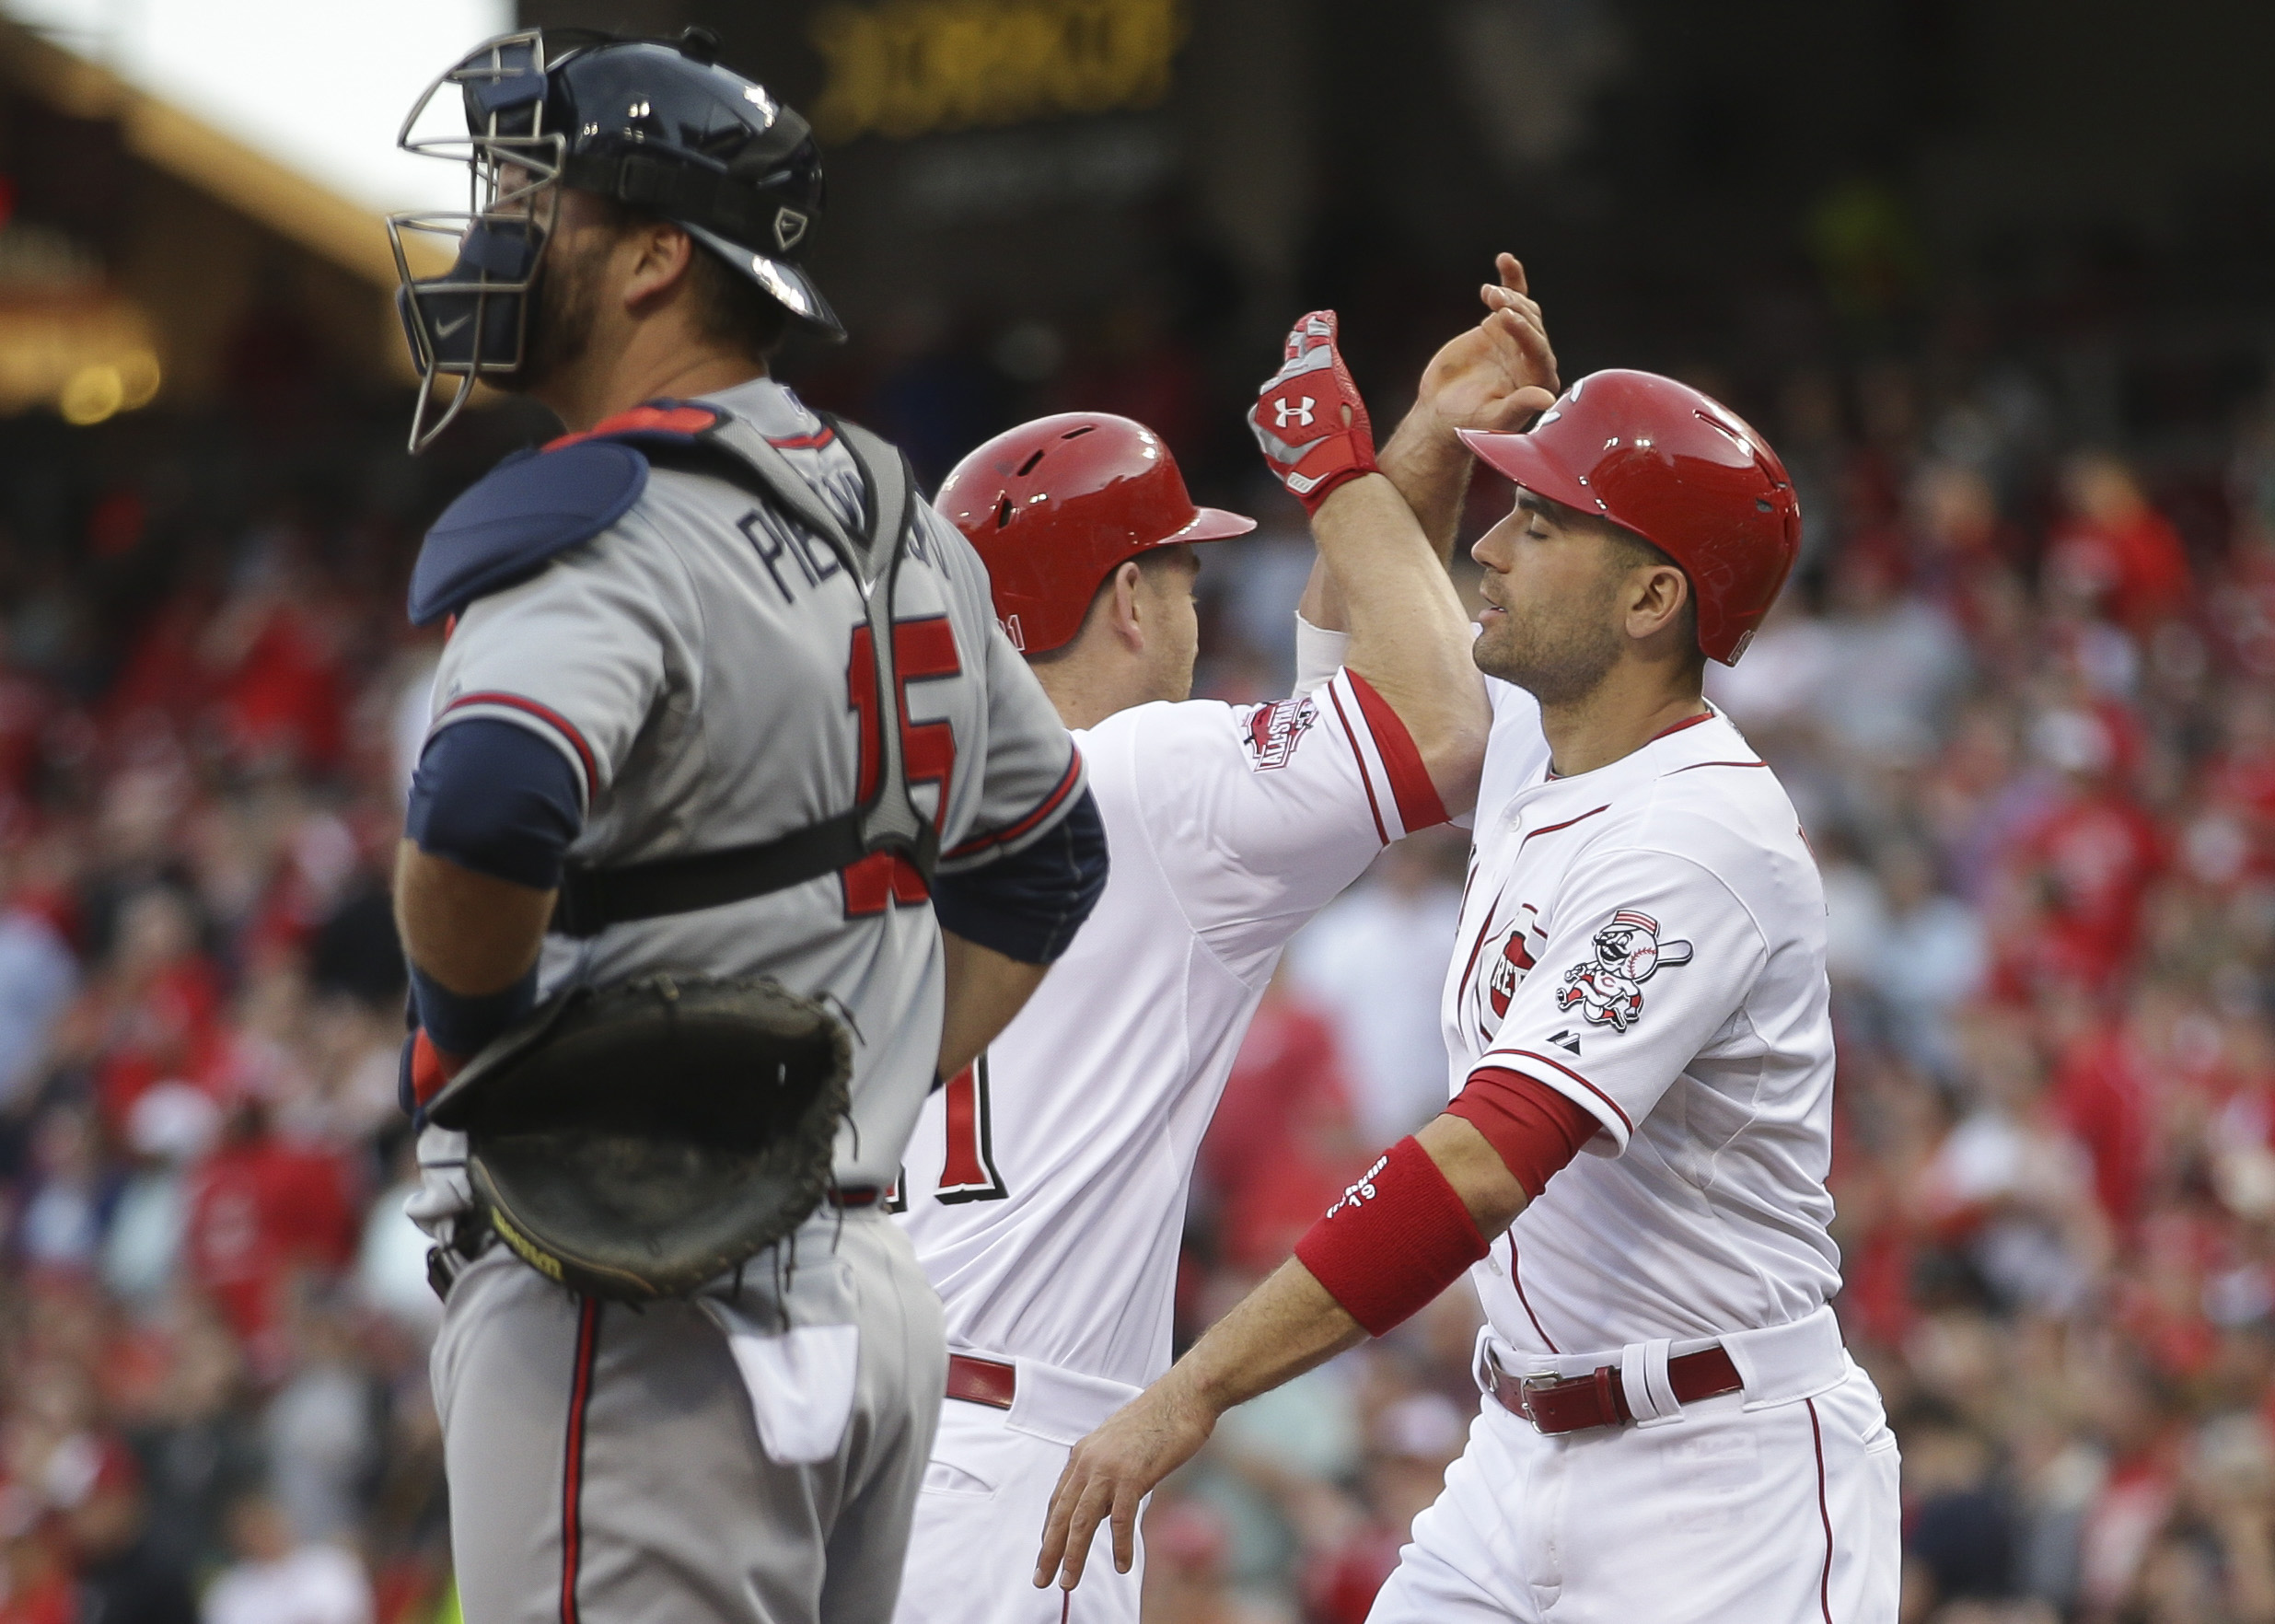 Cincinnati Reds' Todd Frazier, center, celebrates with teammate Joey Votto, right, after hitting a two-run home run as Atlanta Braves catcher A.J. Pierzynski stands at home plate in the first inning of a baseball game, Tuesday, May 12, 2015, in Cincinnati